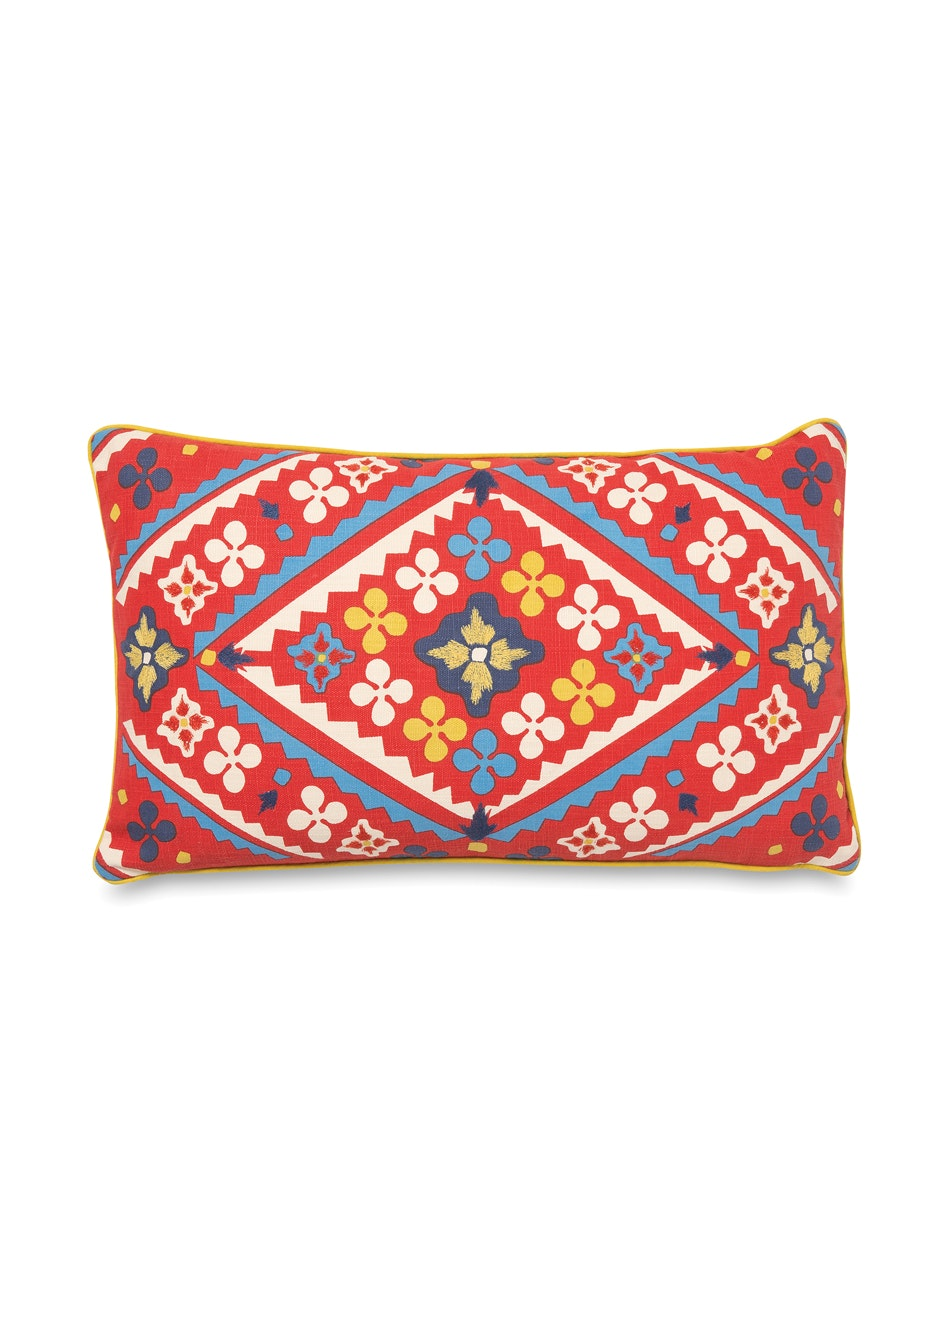 Città - Market Embroidered Lumbar Cushion Cover